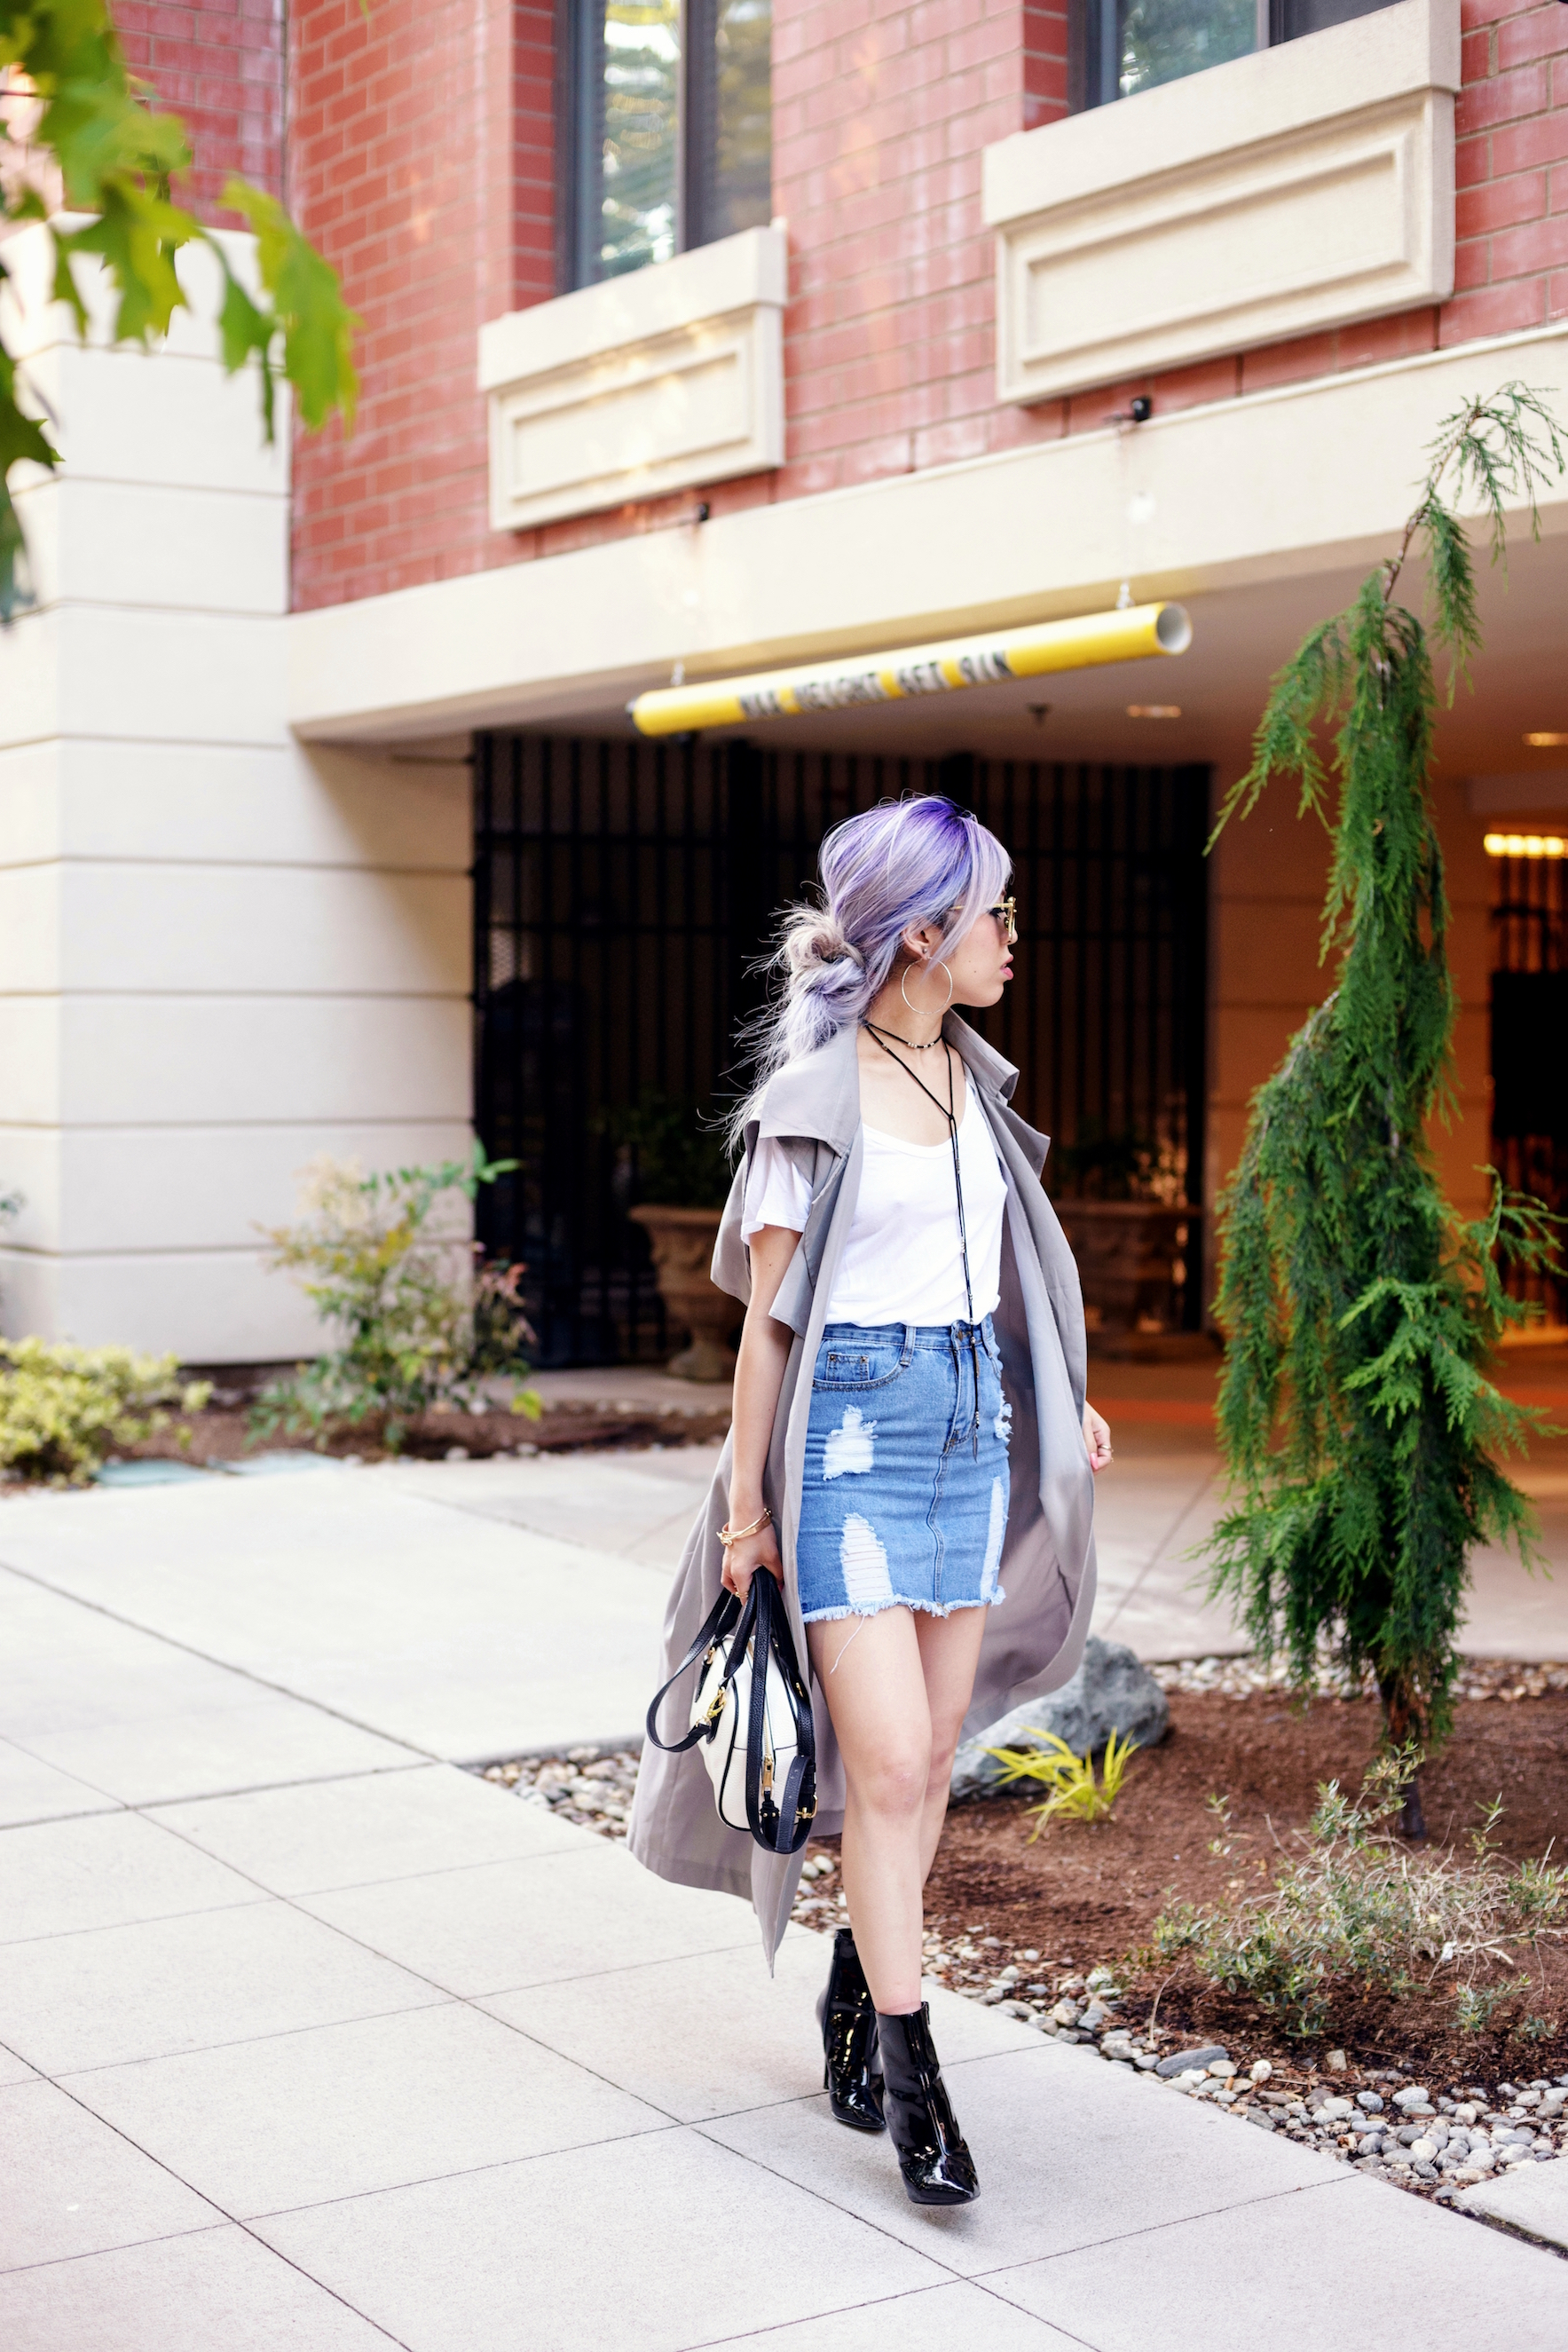 Dezzal Grey Trench Coat_TOPSHOP White T-shirt_She Inside Highwaisted Denim Mini Skit_ALDO Patent Boots_ZARA Mini Bag_Suede Choker_Daniel Wellington Watch_Aikas Love Cloeset_Seattle Fashion Blogger from Japan_Lavender Hair_Messy low bun Hair 11